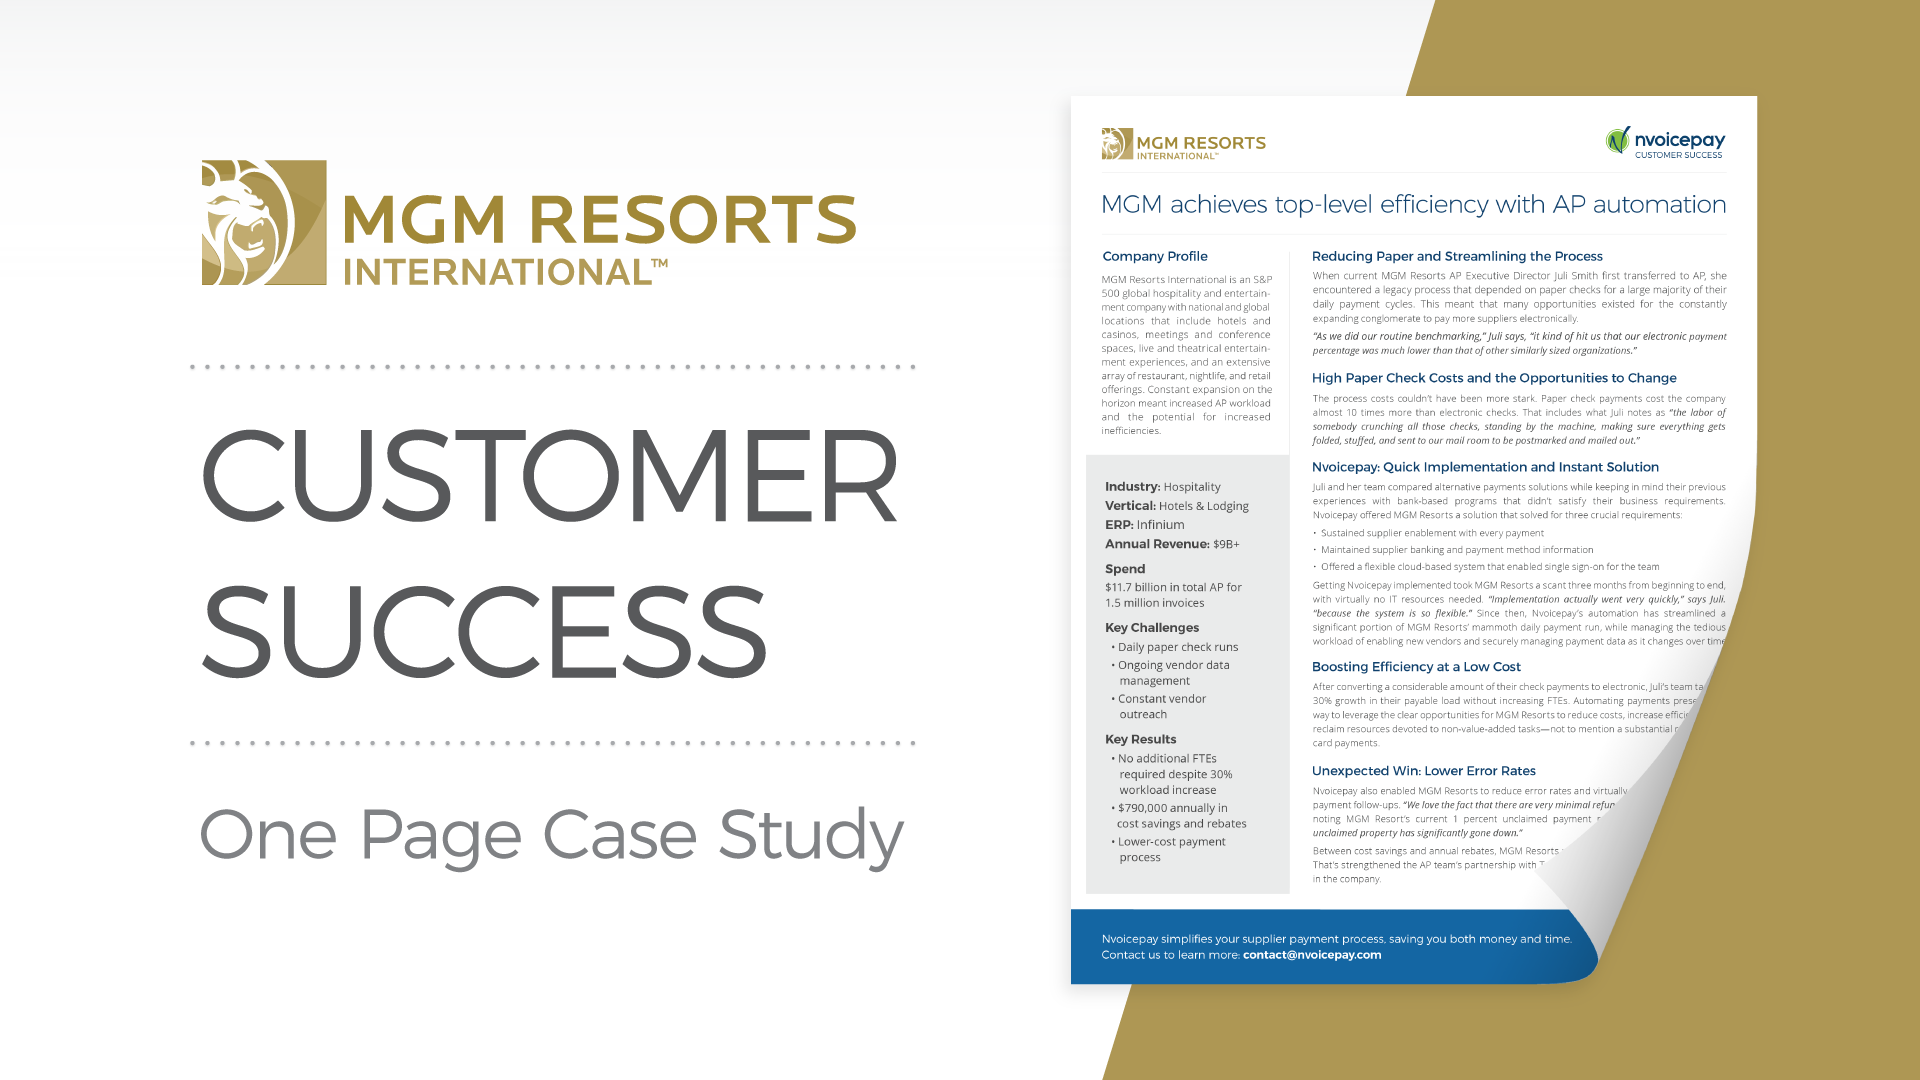 Customer Story: MGM Resorts International